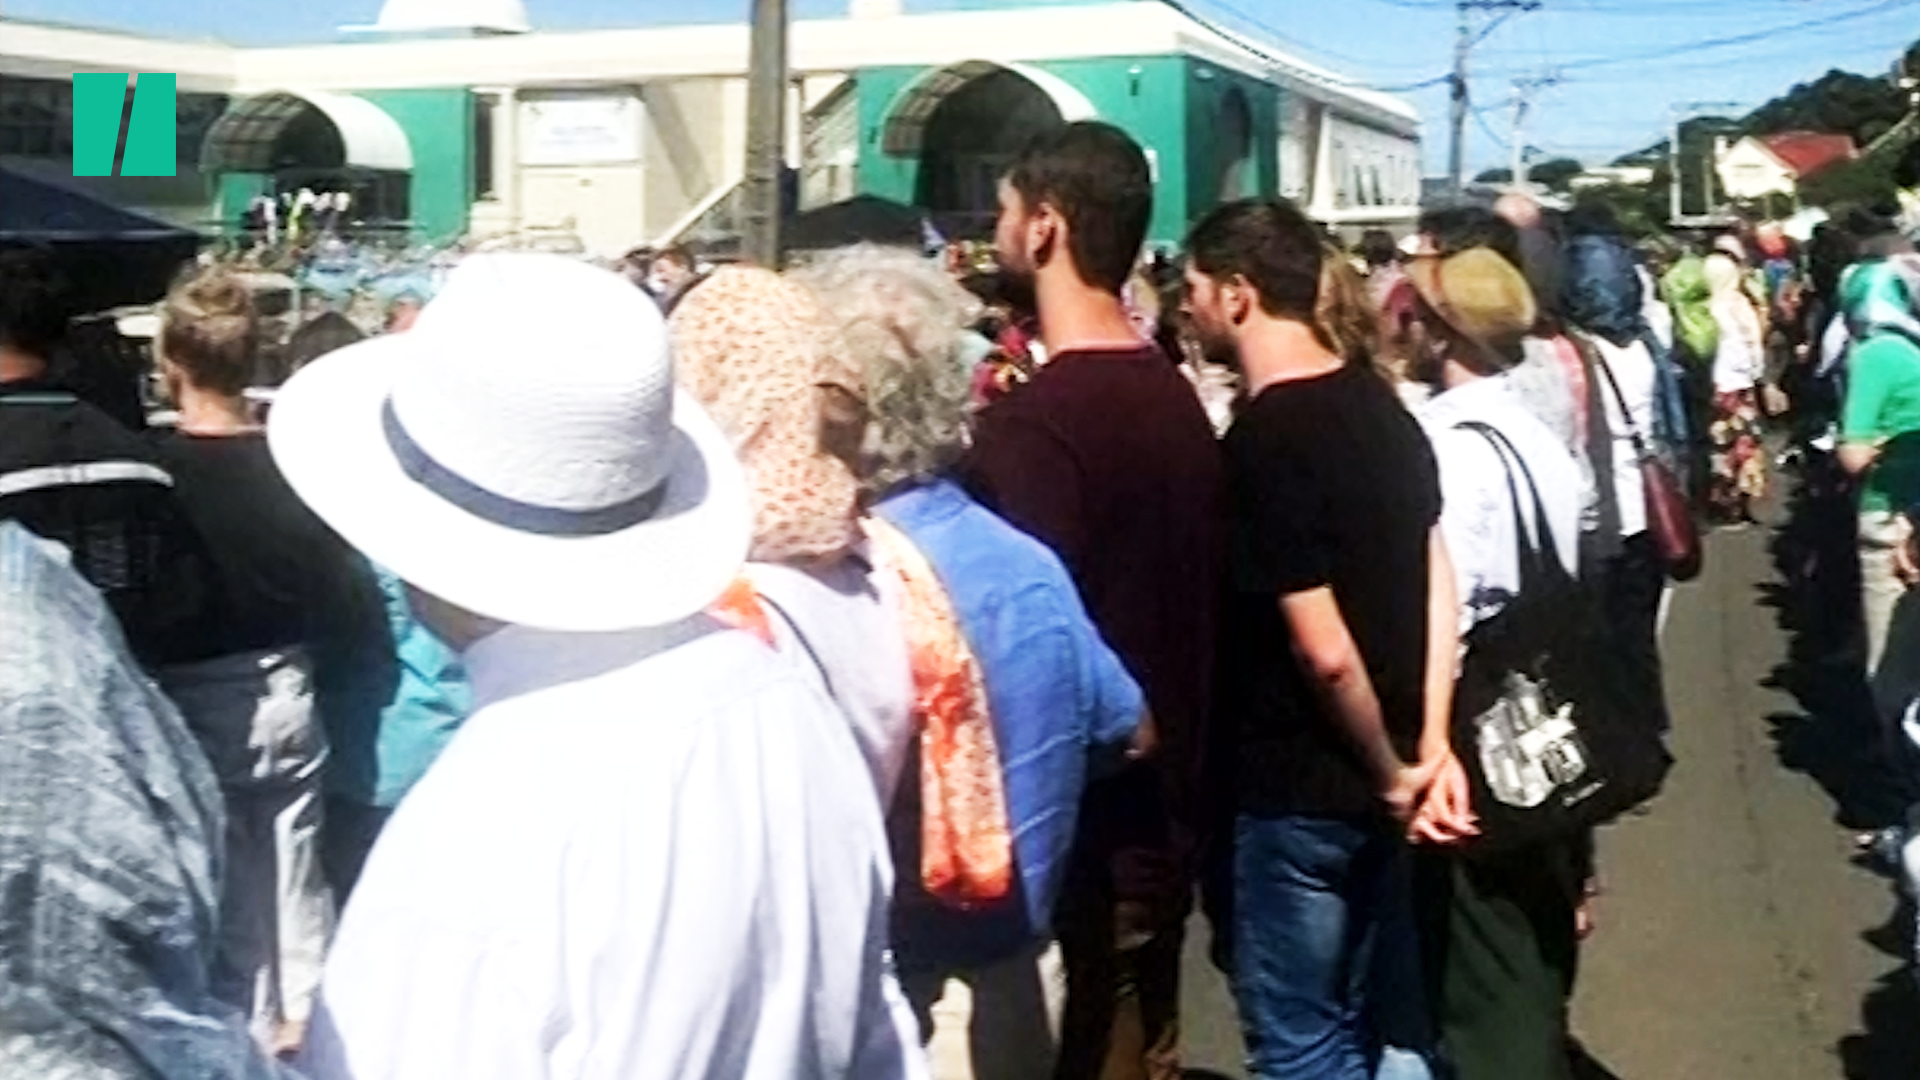 New Zealanders Create Human Chain Around Mosque To Shield Muslims In Prayer